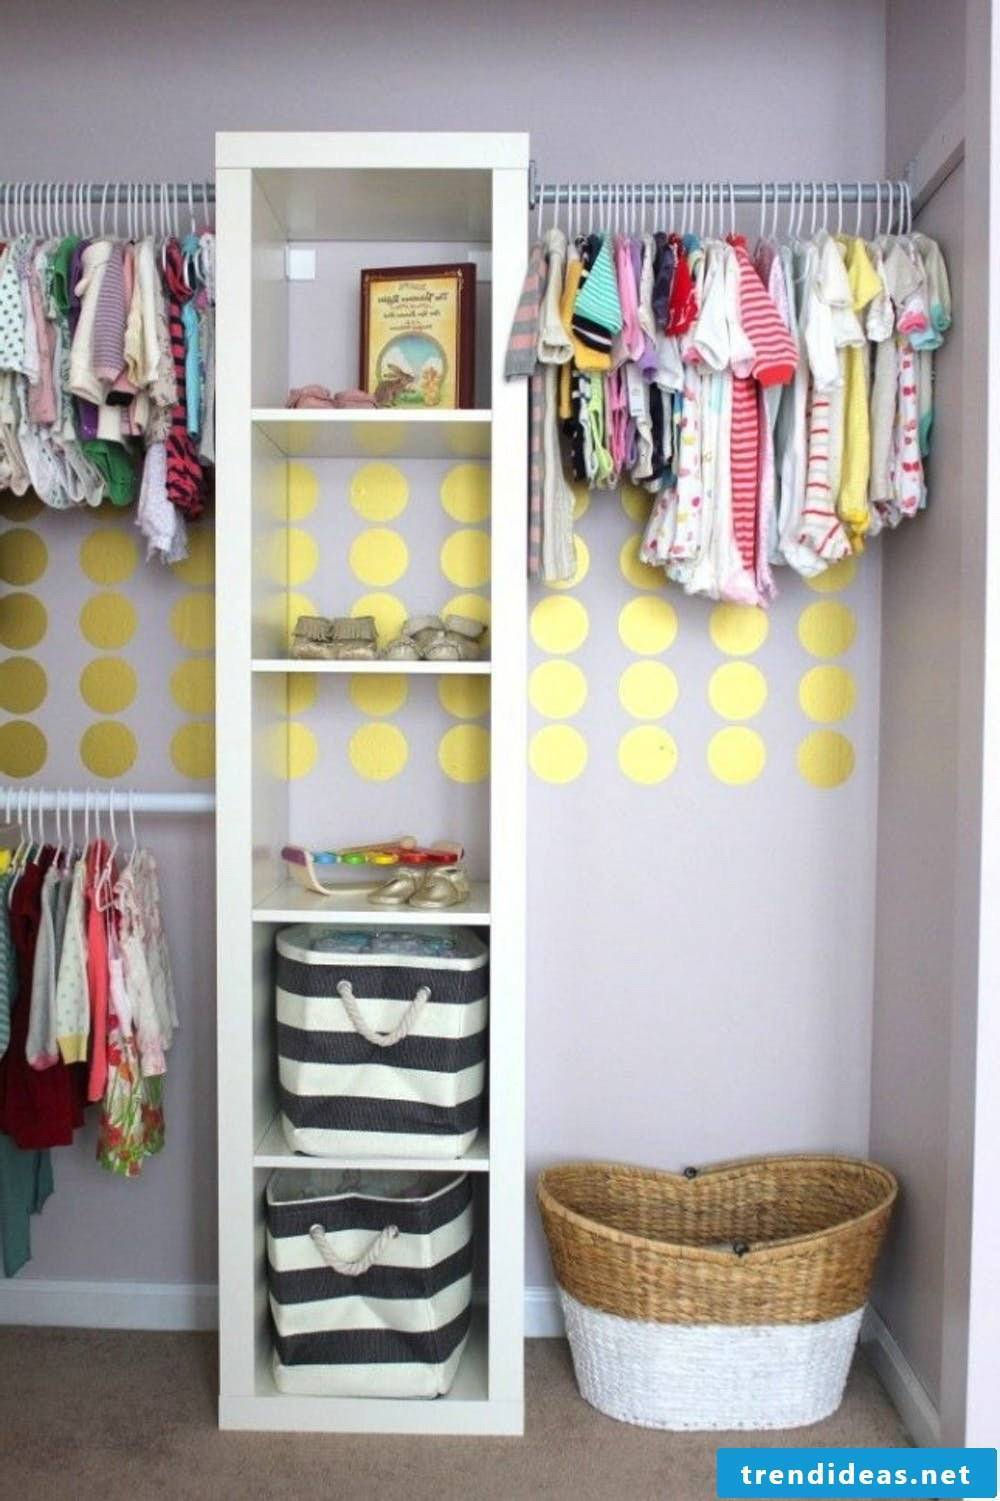 Baby room completely furnished - enough storage space and enough space for games